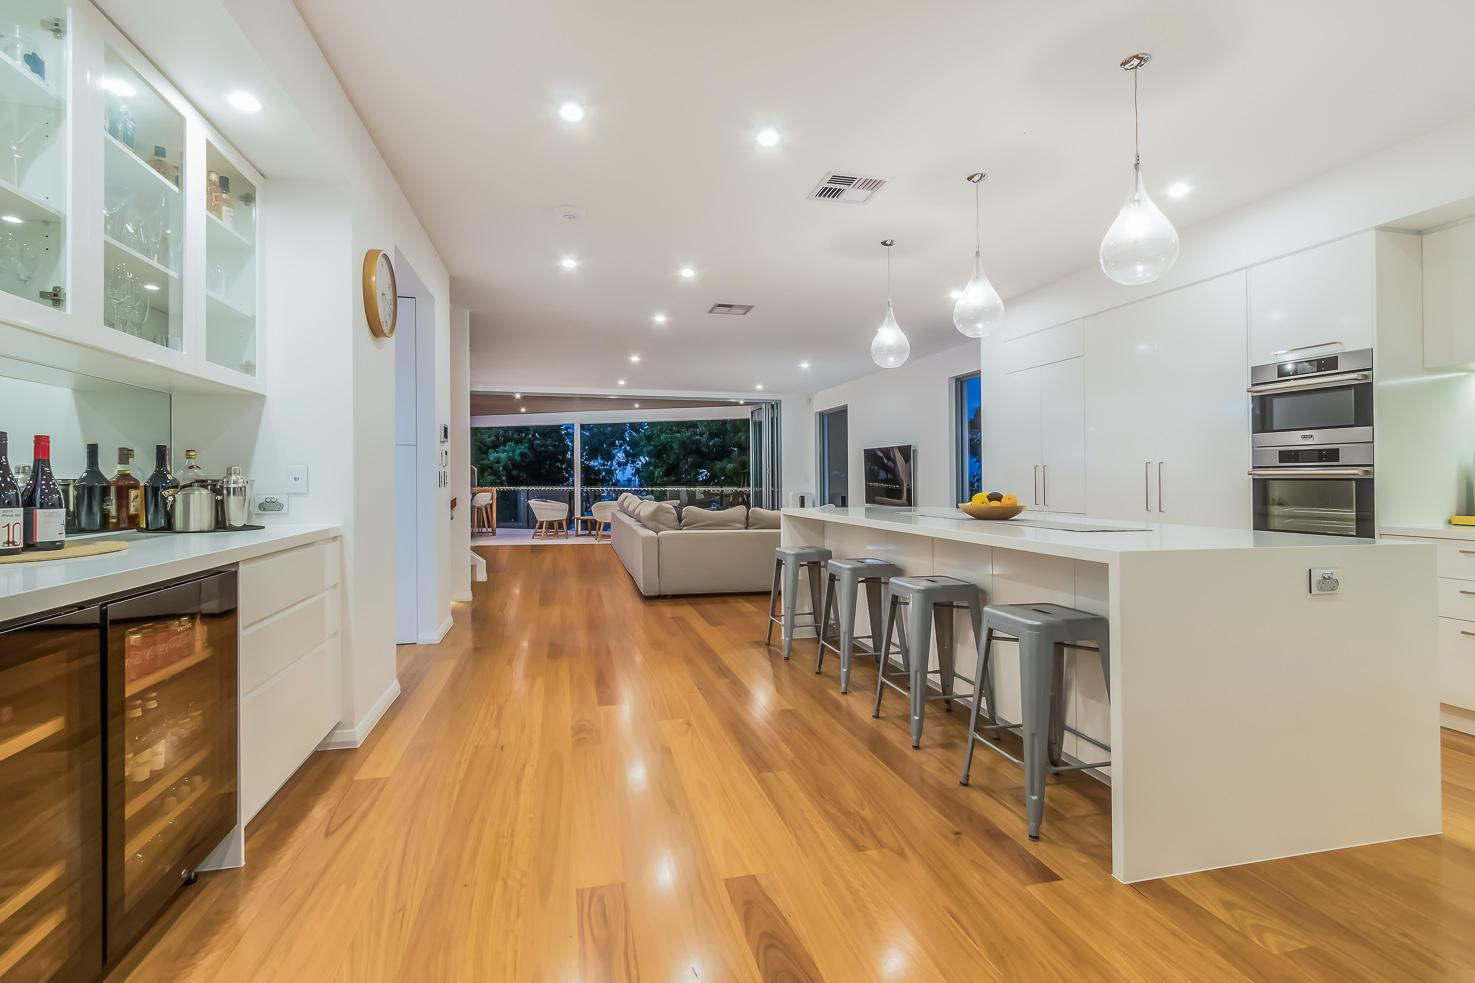 Brisbane Manly contemporary home by evermore looking from the kitchen to the view on the front deck